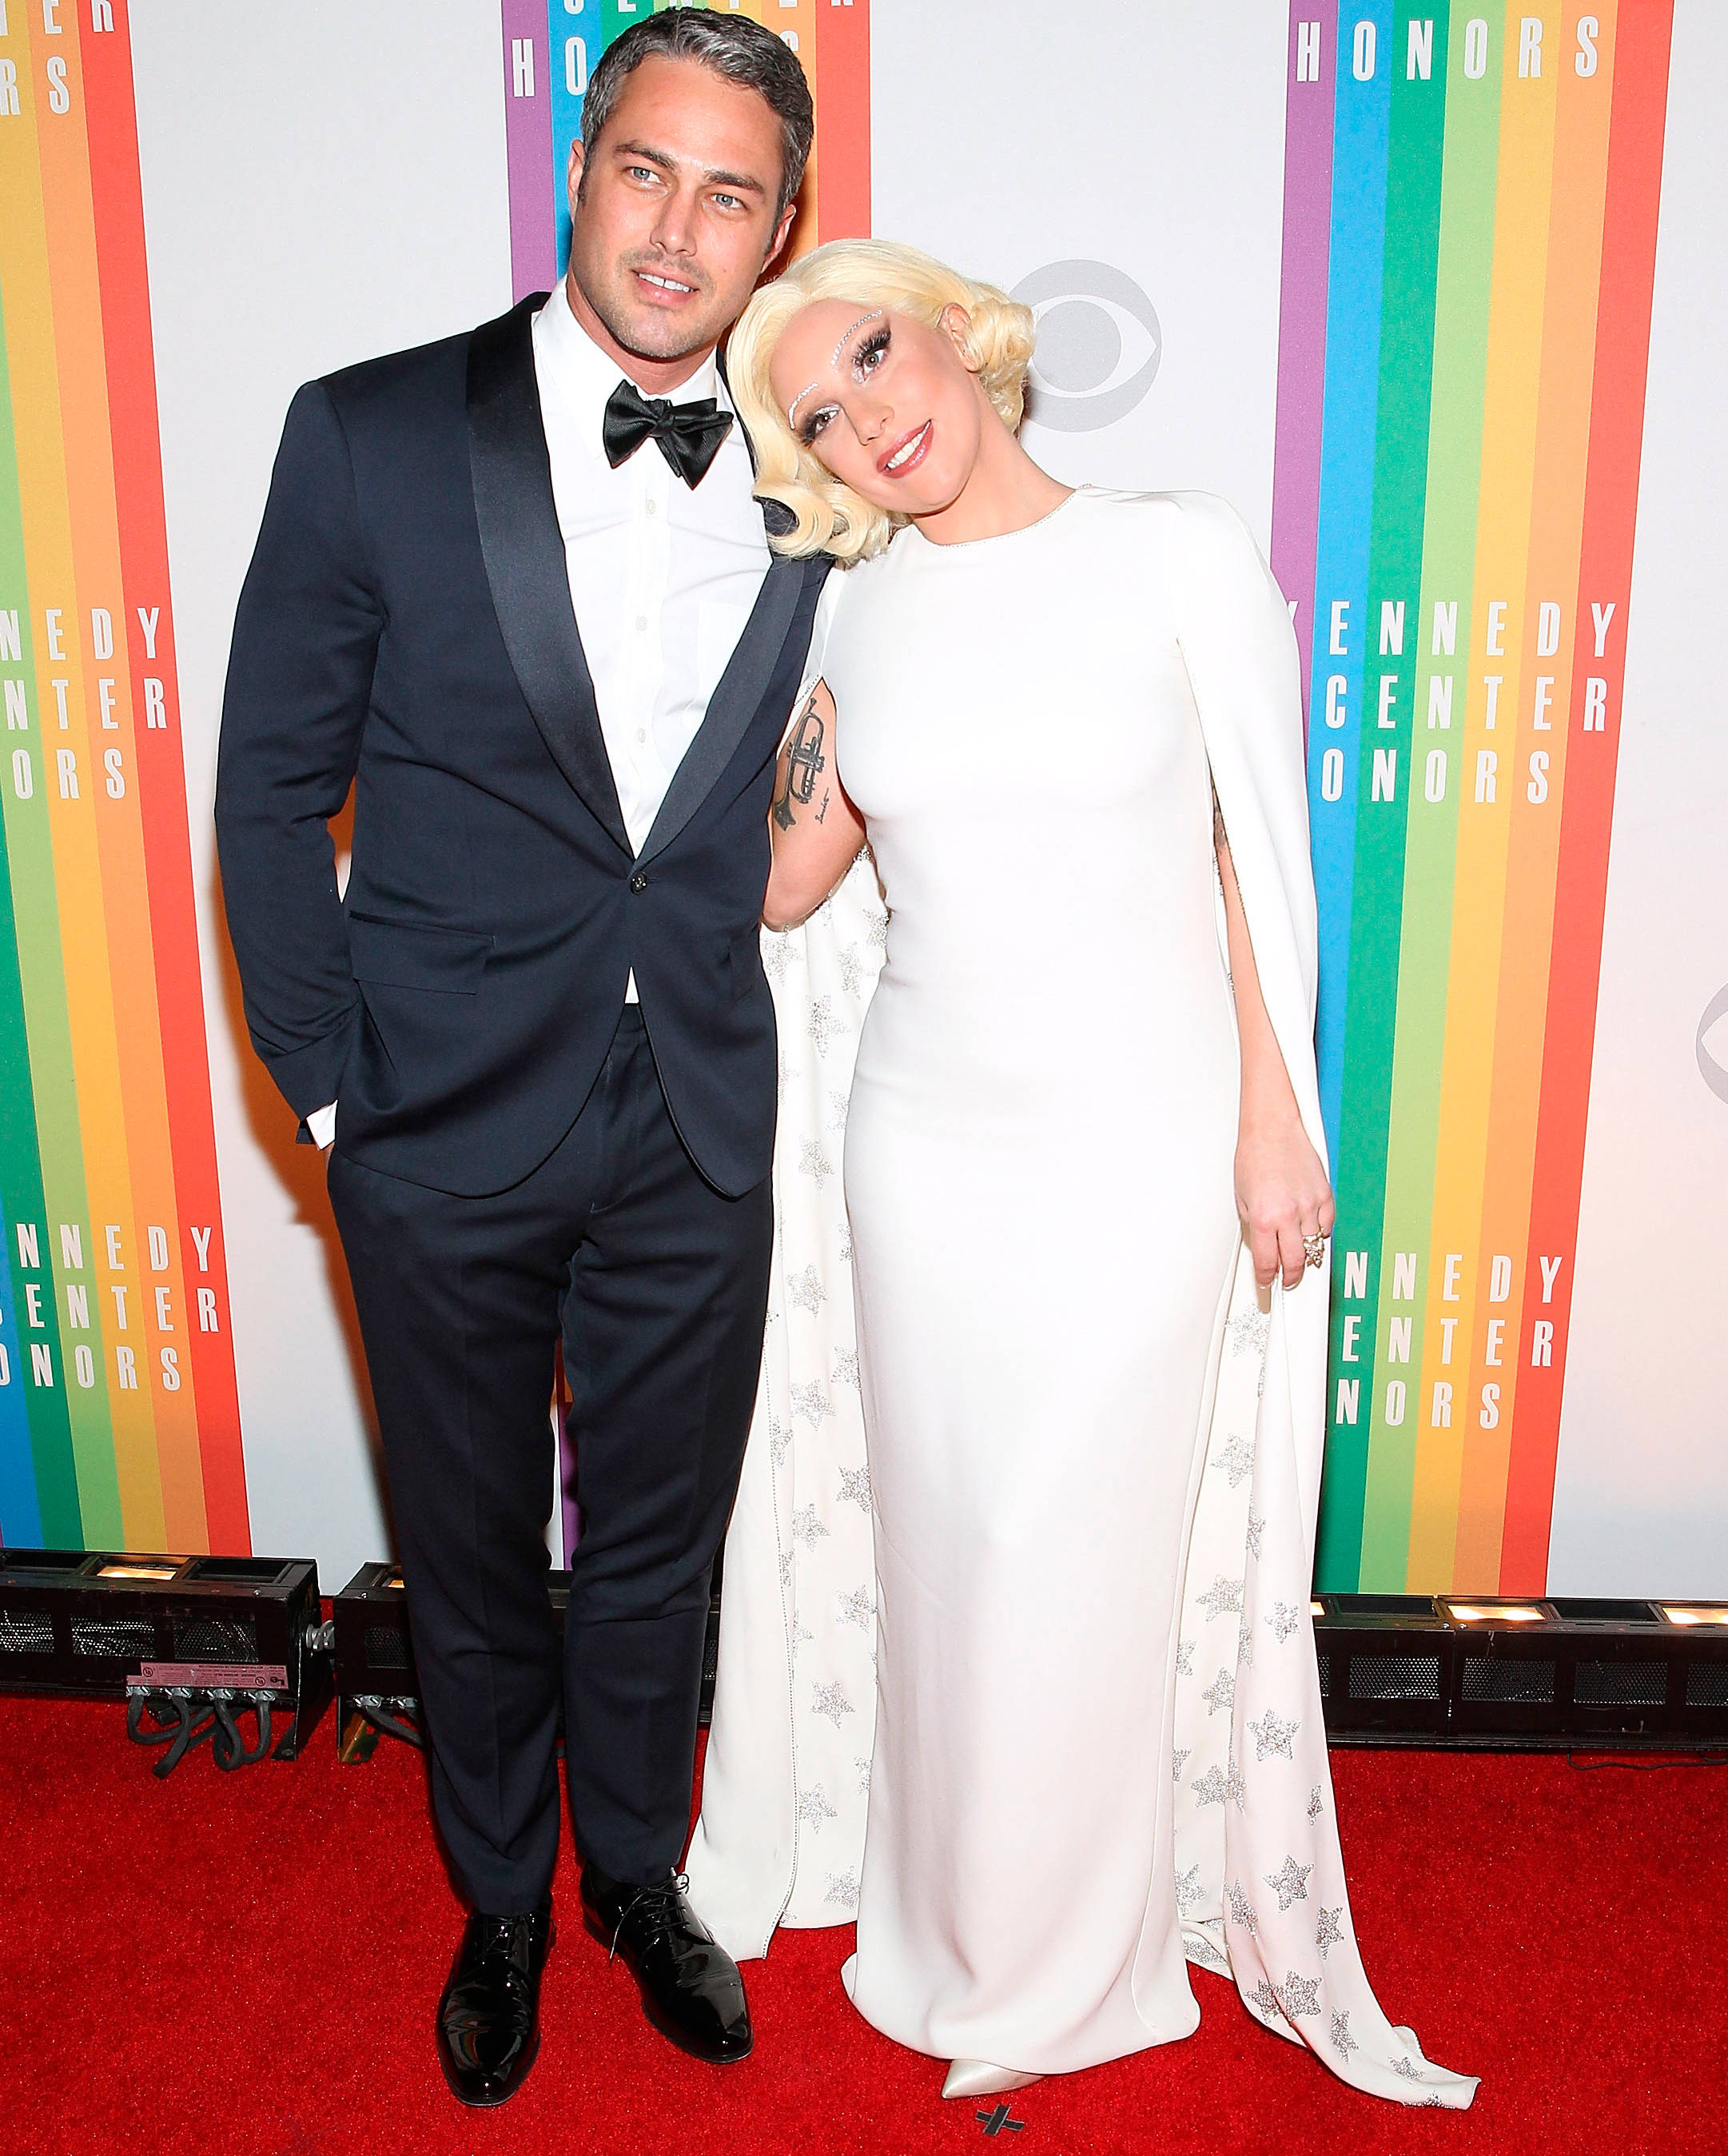 marry-me-martha-lady-gaga-taylor-kinney-0715.jpg